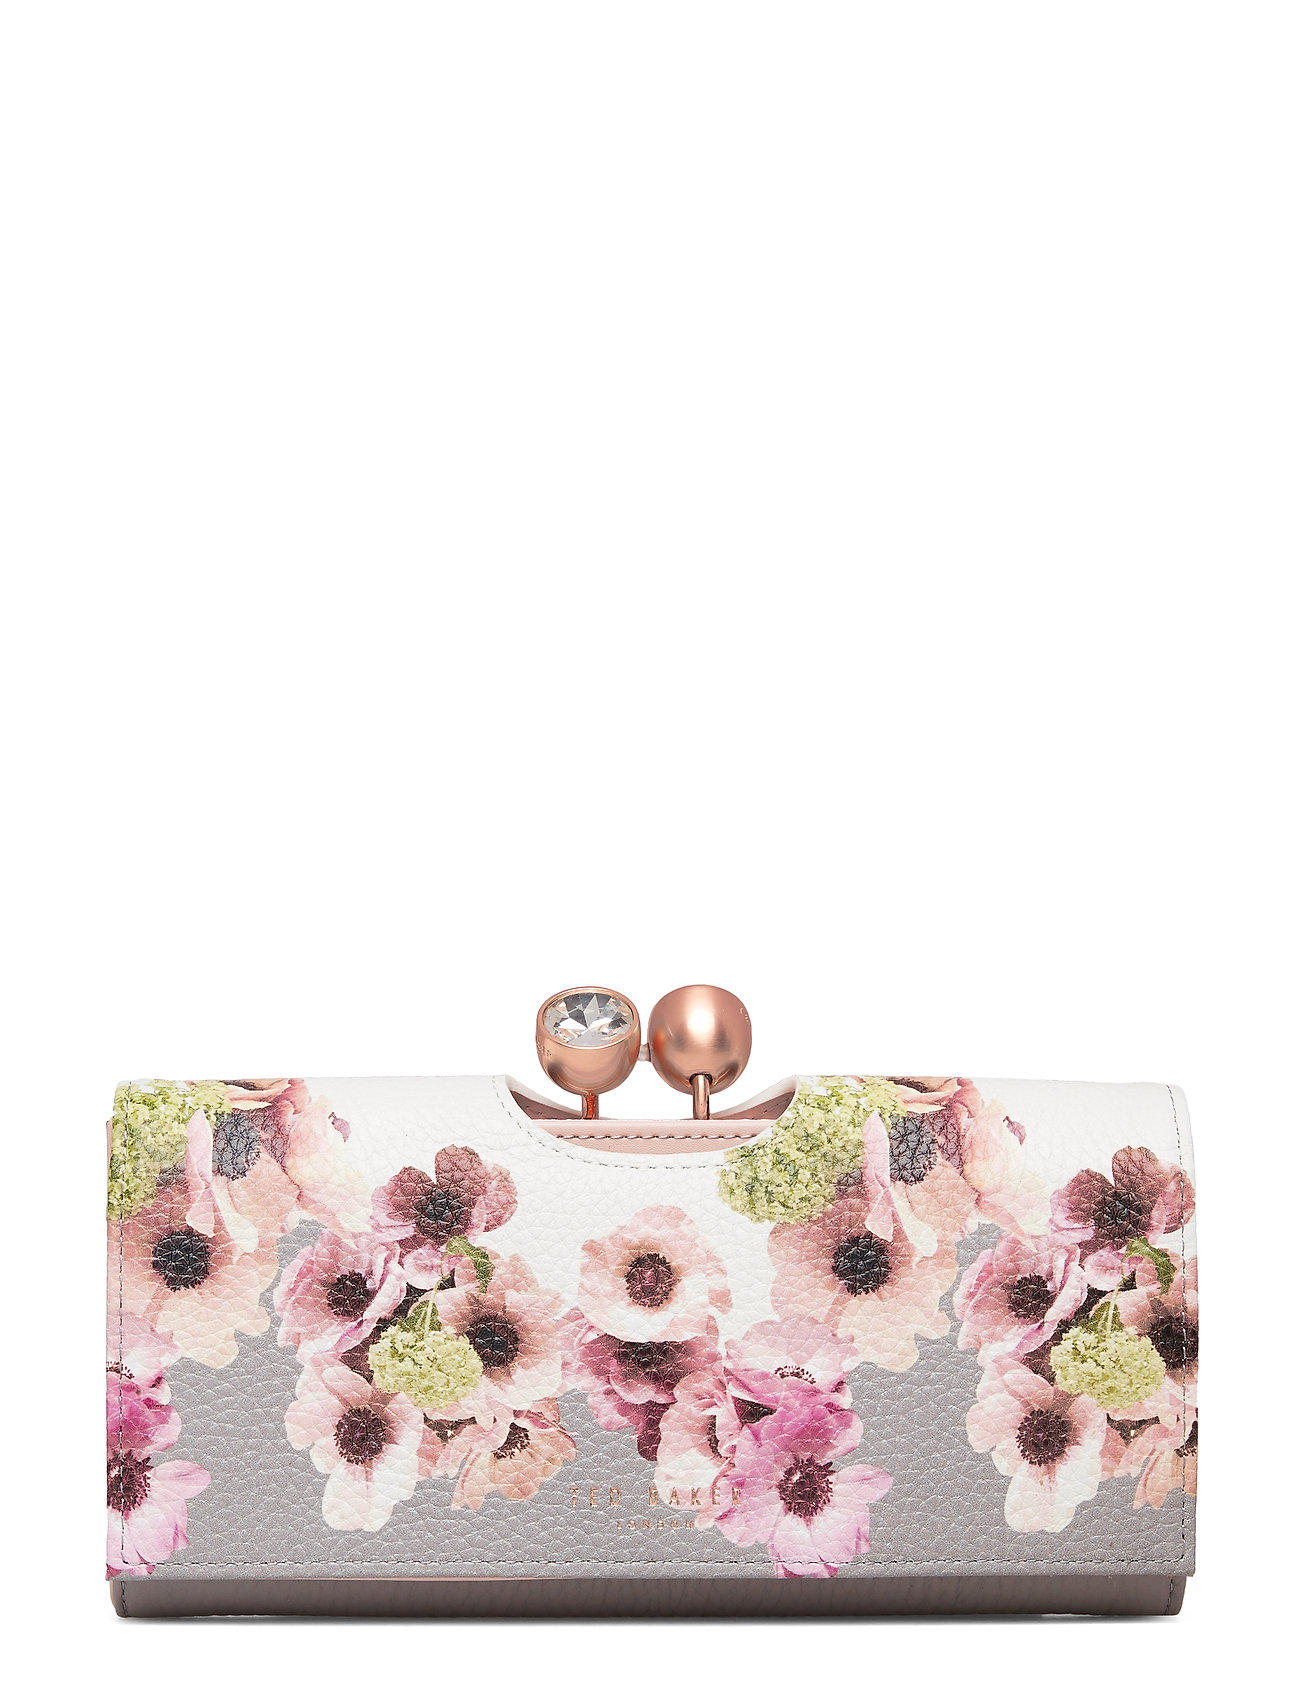 TED BAKER Adelphe Bags Card Holders & Wallets Wallets Pink TED BAKER